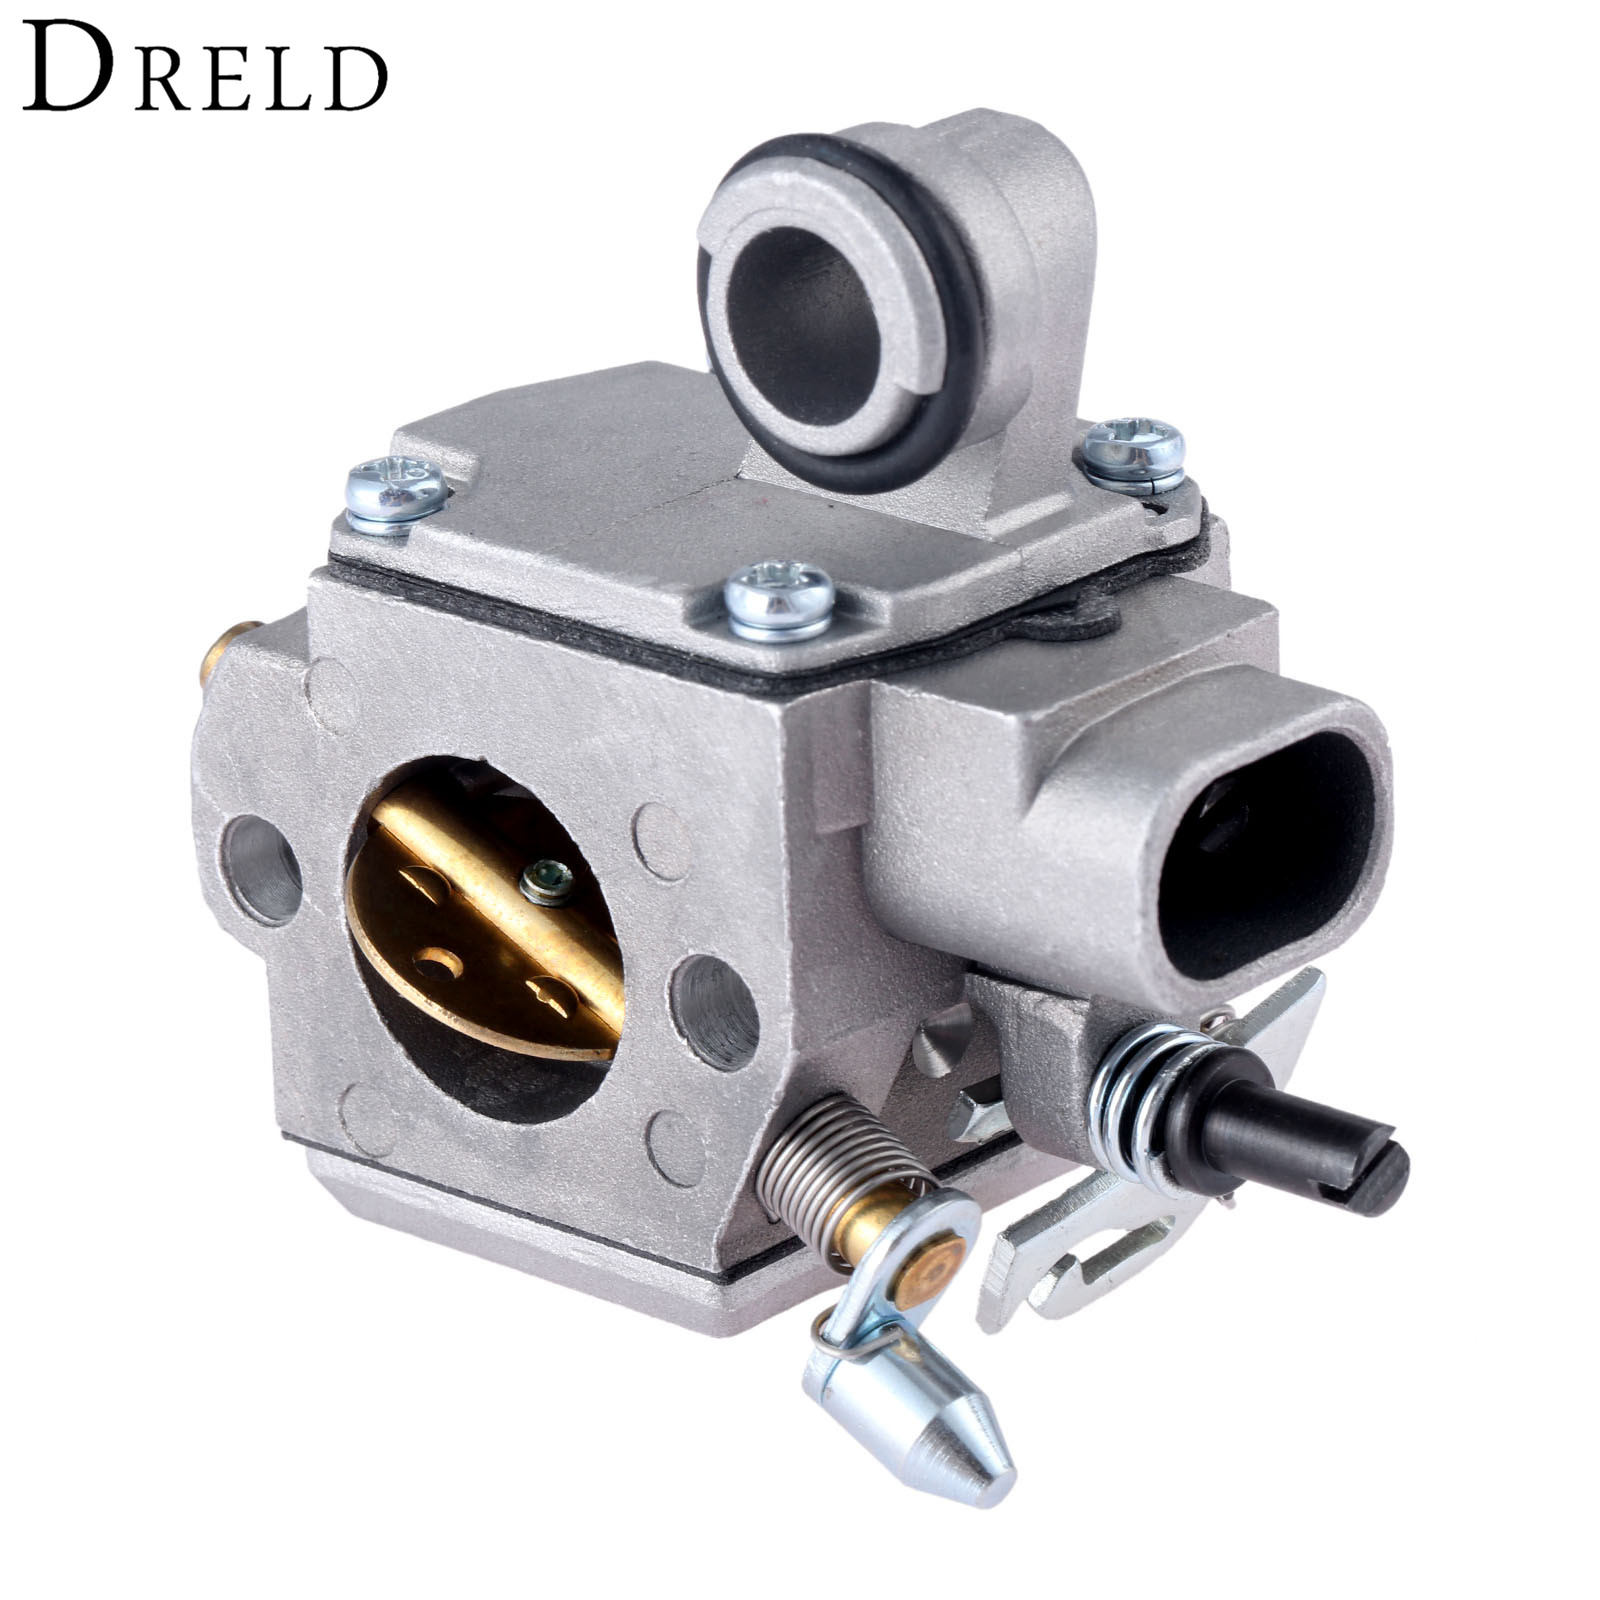 DRELD Chainsaws Carburetor Carb For STIHL MS361 MS 361 Rep 1135 120 0601 Chainsaw Replacement 2-Stroke Garden Power Tools